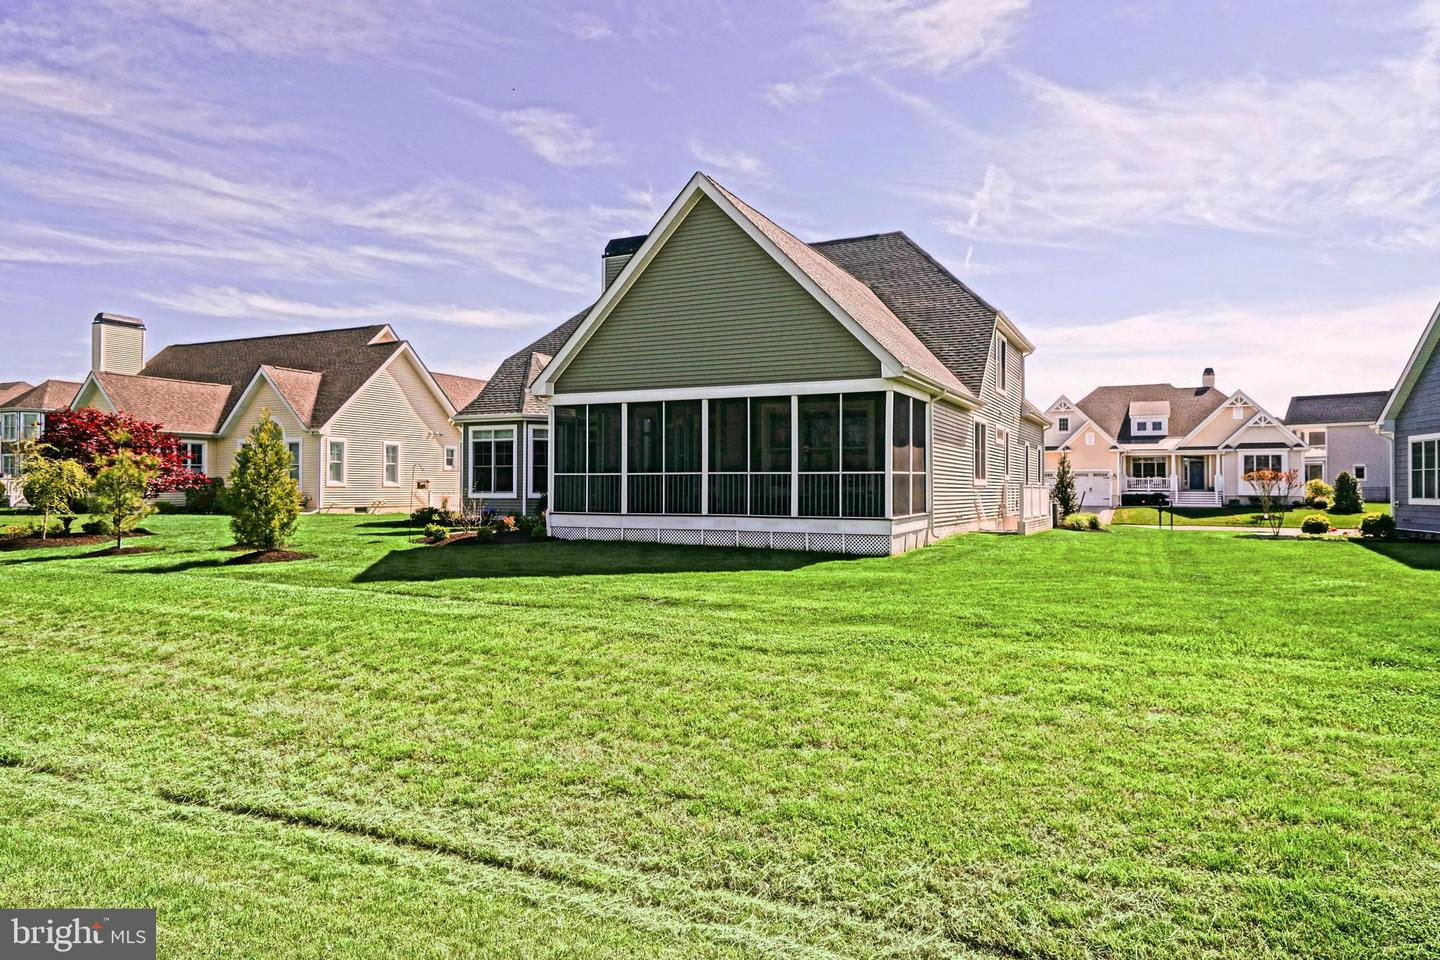 DESU139128-301667383109-2019-08-05-10-43-56 35222 Overfalls Dr N | Lewes, DE Real Estate For Sale | MLS# Desu139128  - Lee Ann Group